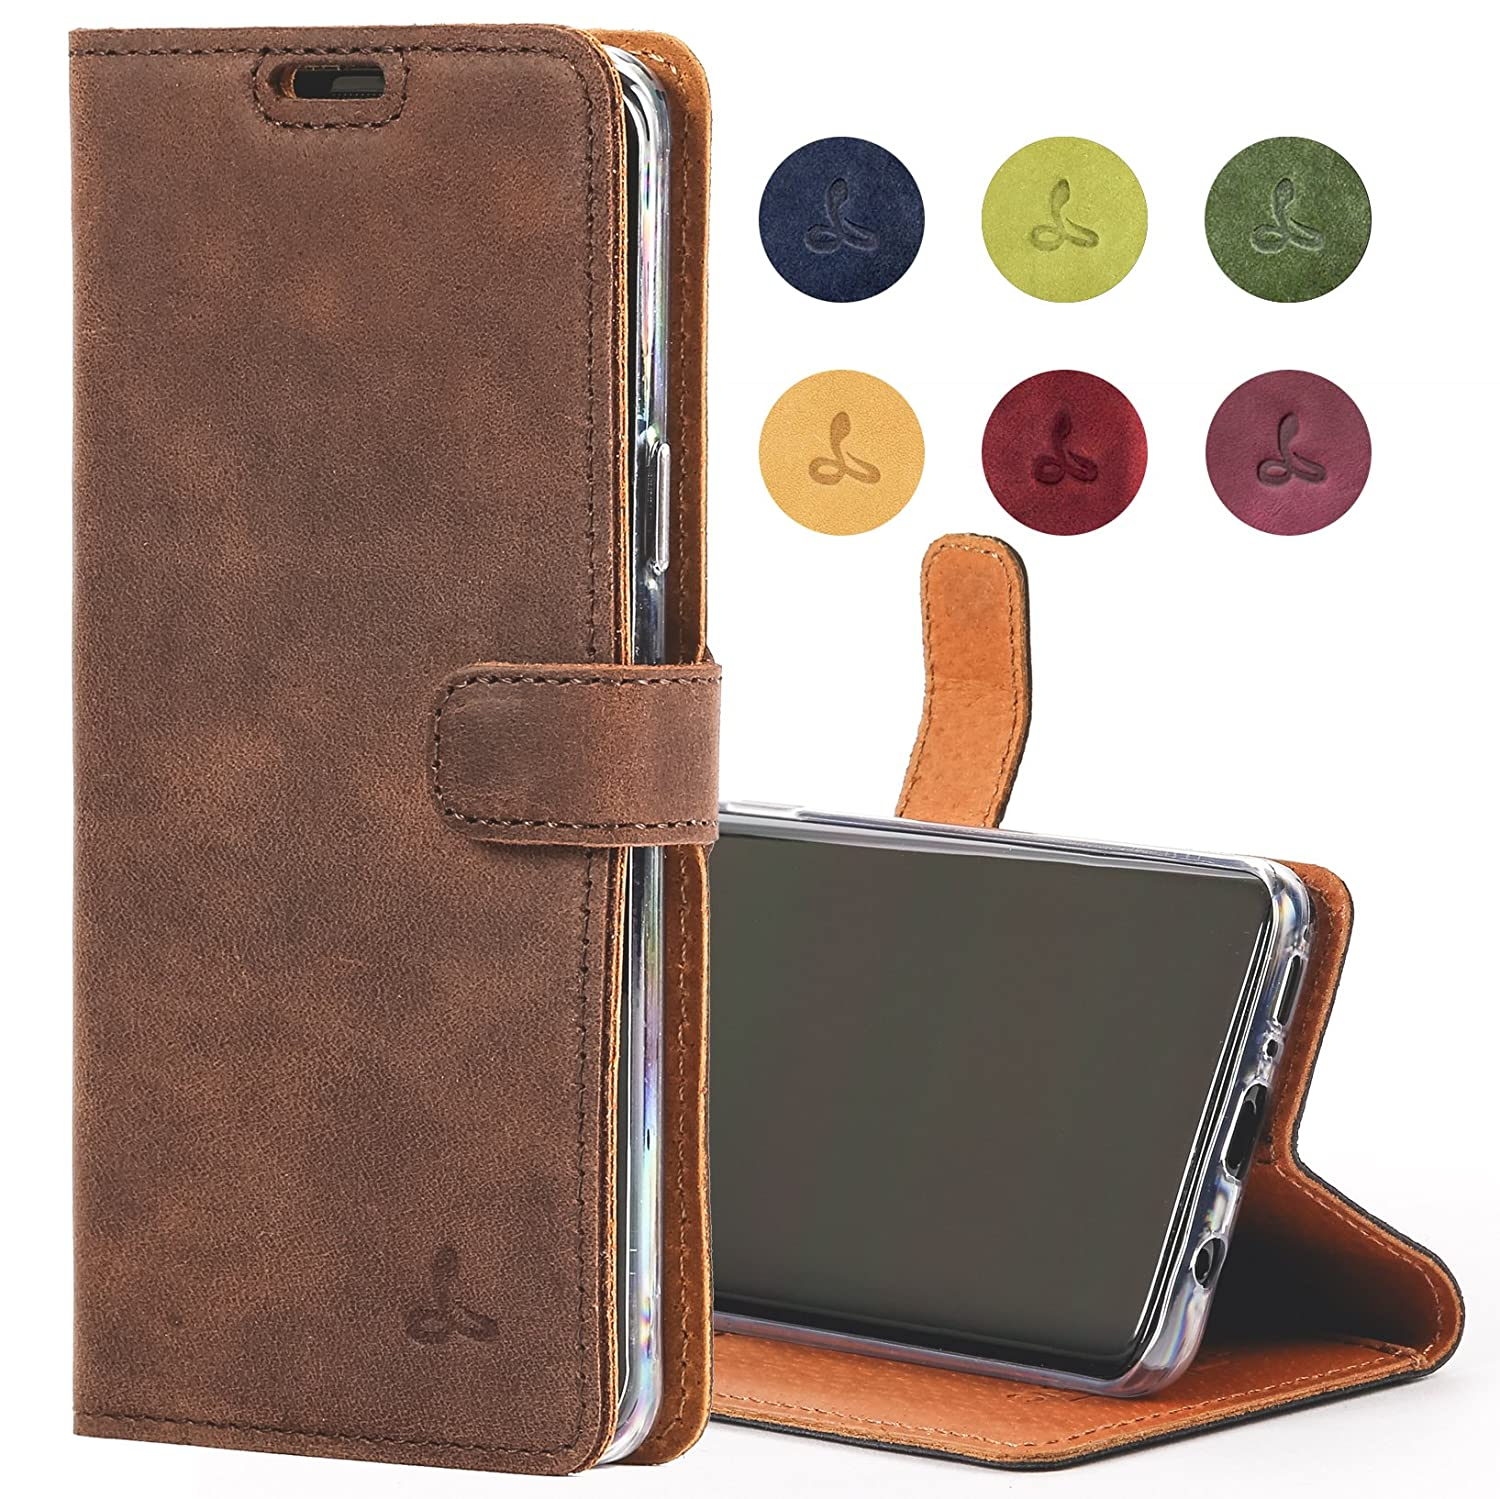 low priced 289ff db4ae Snakehive SAMSUNG GALAXY S9 Case, Luxury Genuine Leather Wallet with  Viewing Stand and Card Slots, Flip Cover Gift Boxed and Handmade in Europe  for ...